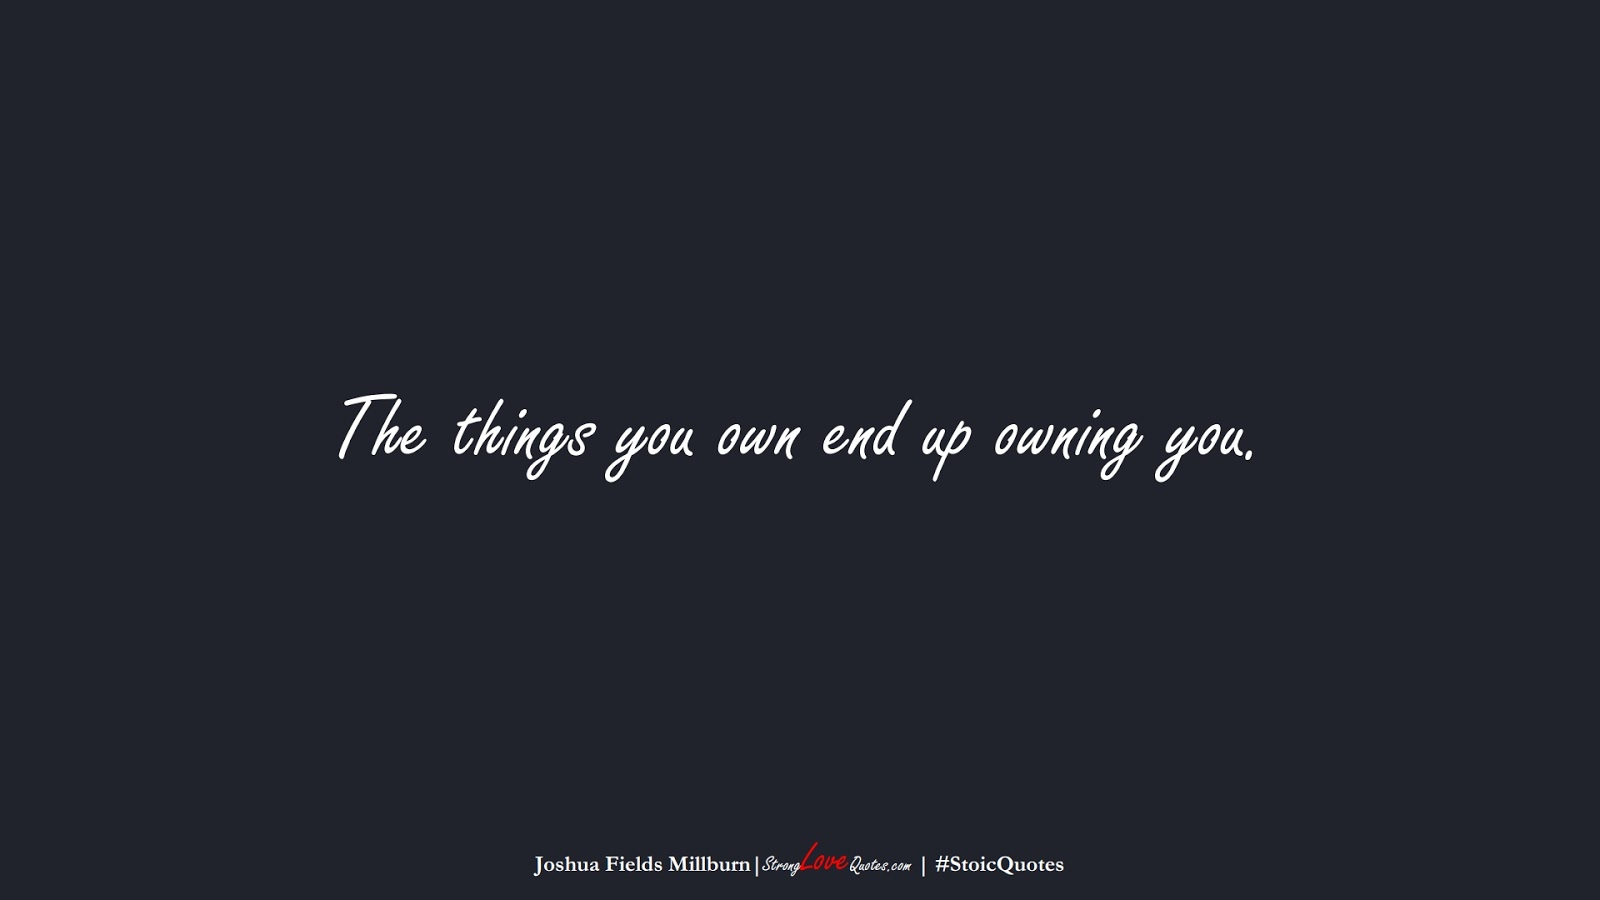 The things you own end up owning you. (Joshua Fields Millburn);  #StoicQuotes